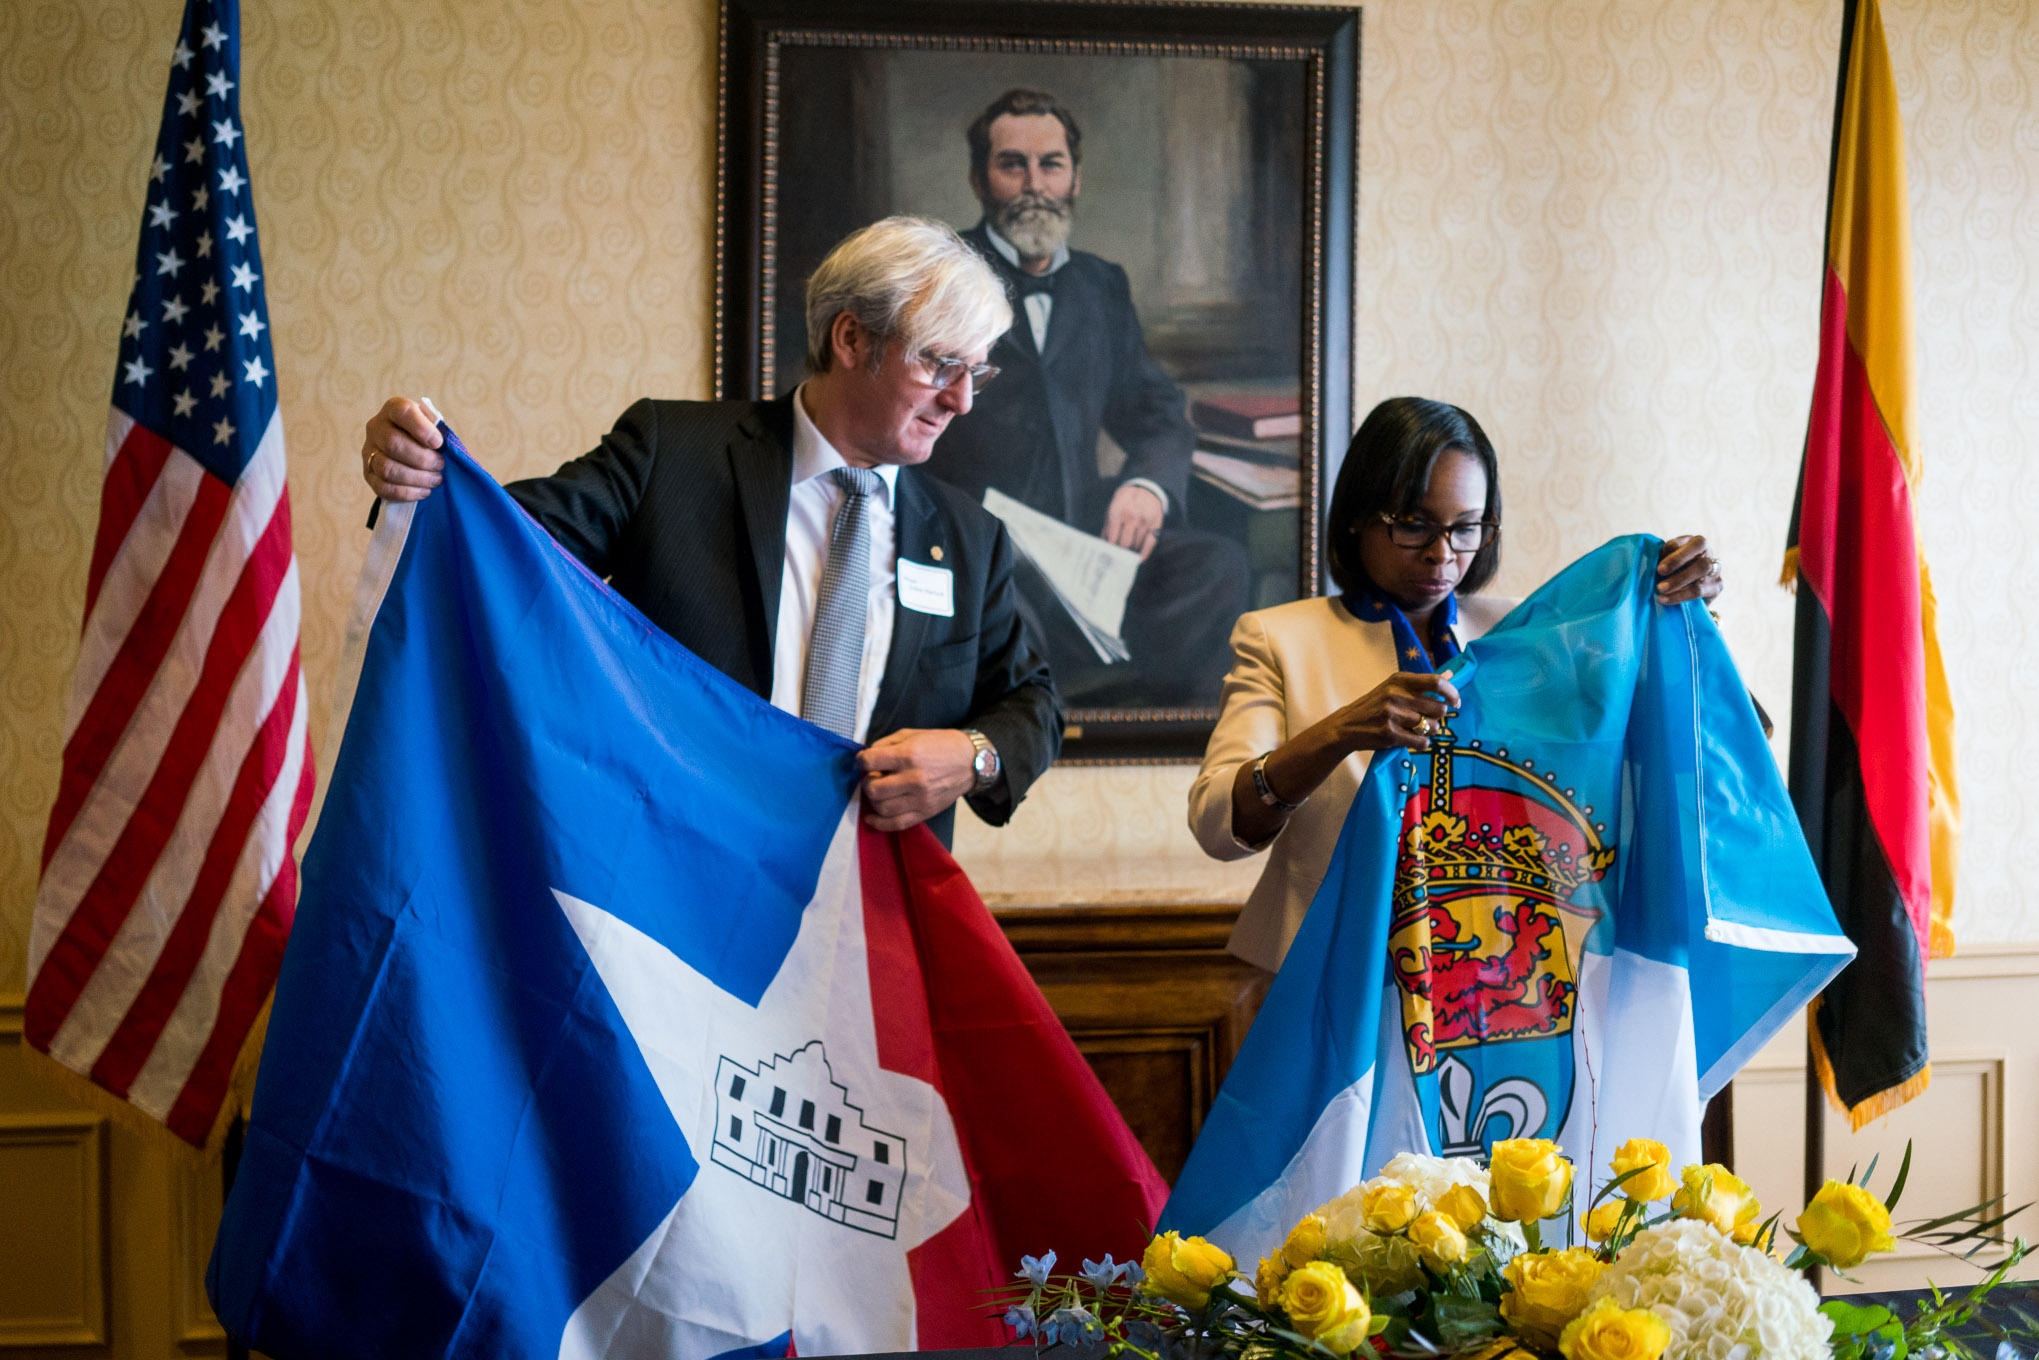 Lord Mayor of Darmstadt Jochen Partsch and Mayor Ivy Taylor exchange their city's flags. Photo by Kathryn Boyd-Batstone